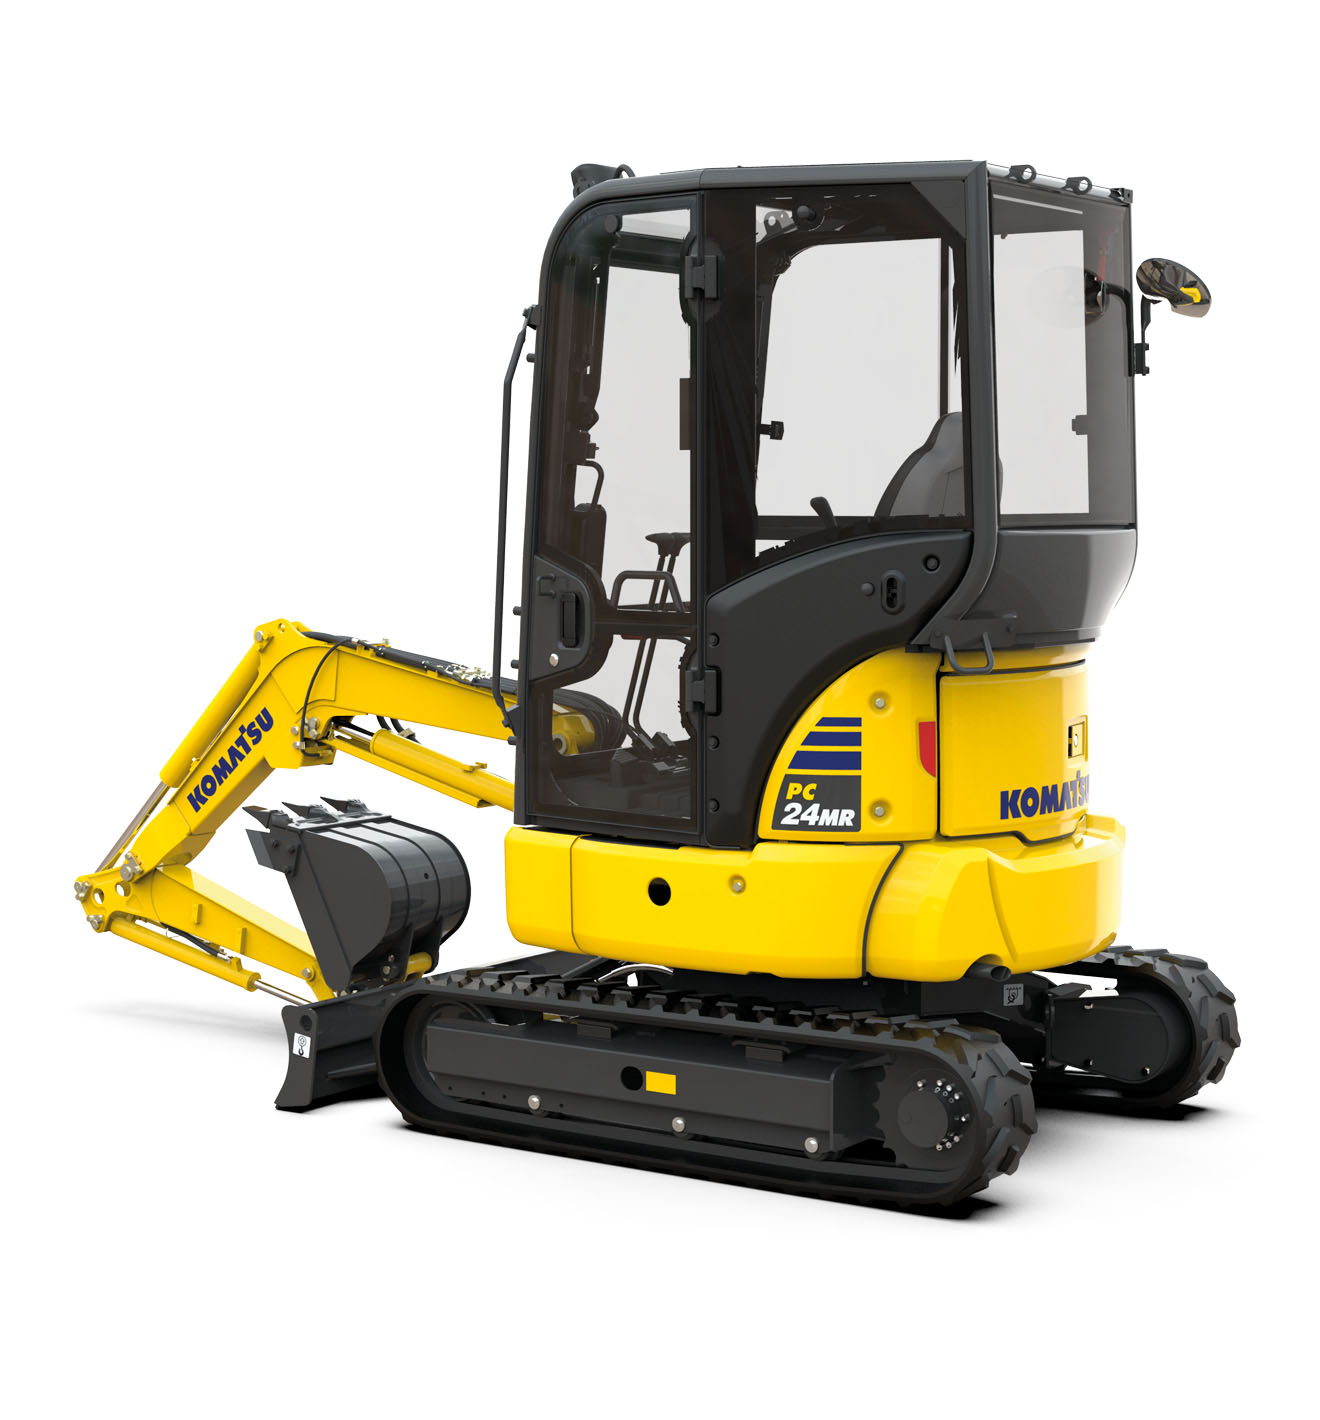 Komatsu Europe Announces PC24MR-5 Mini Excavator